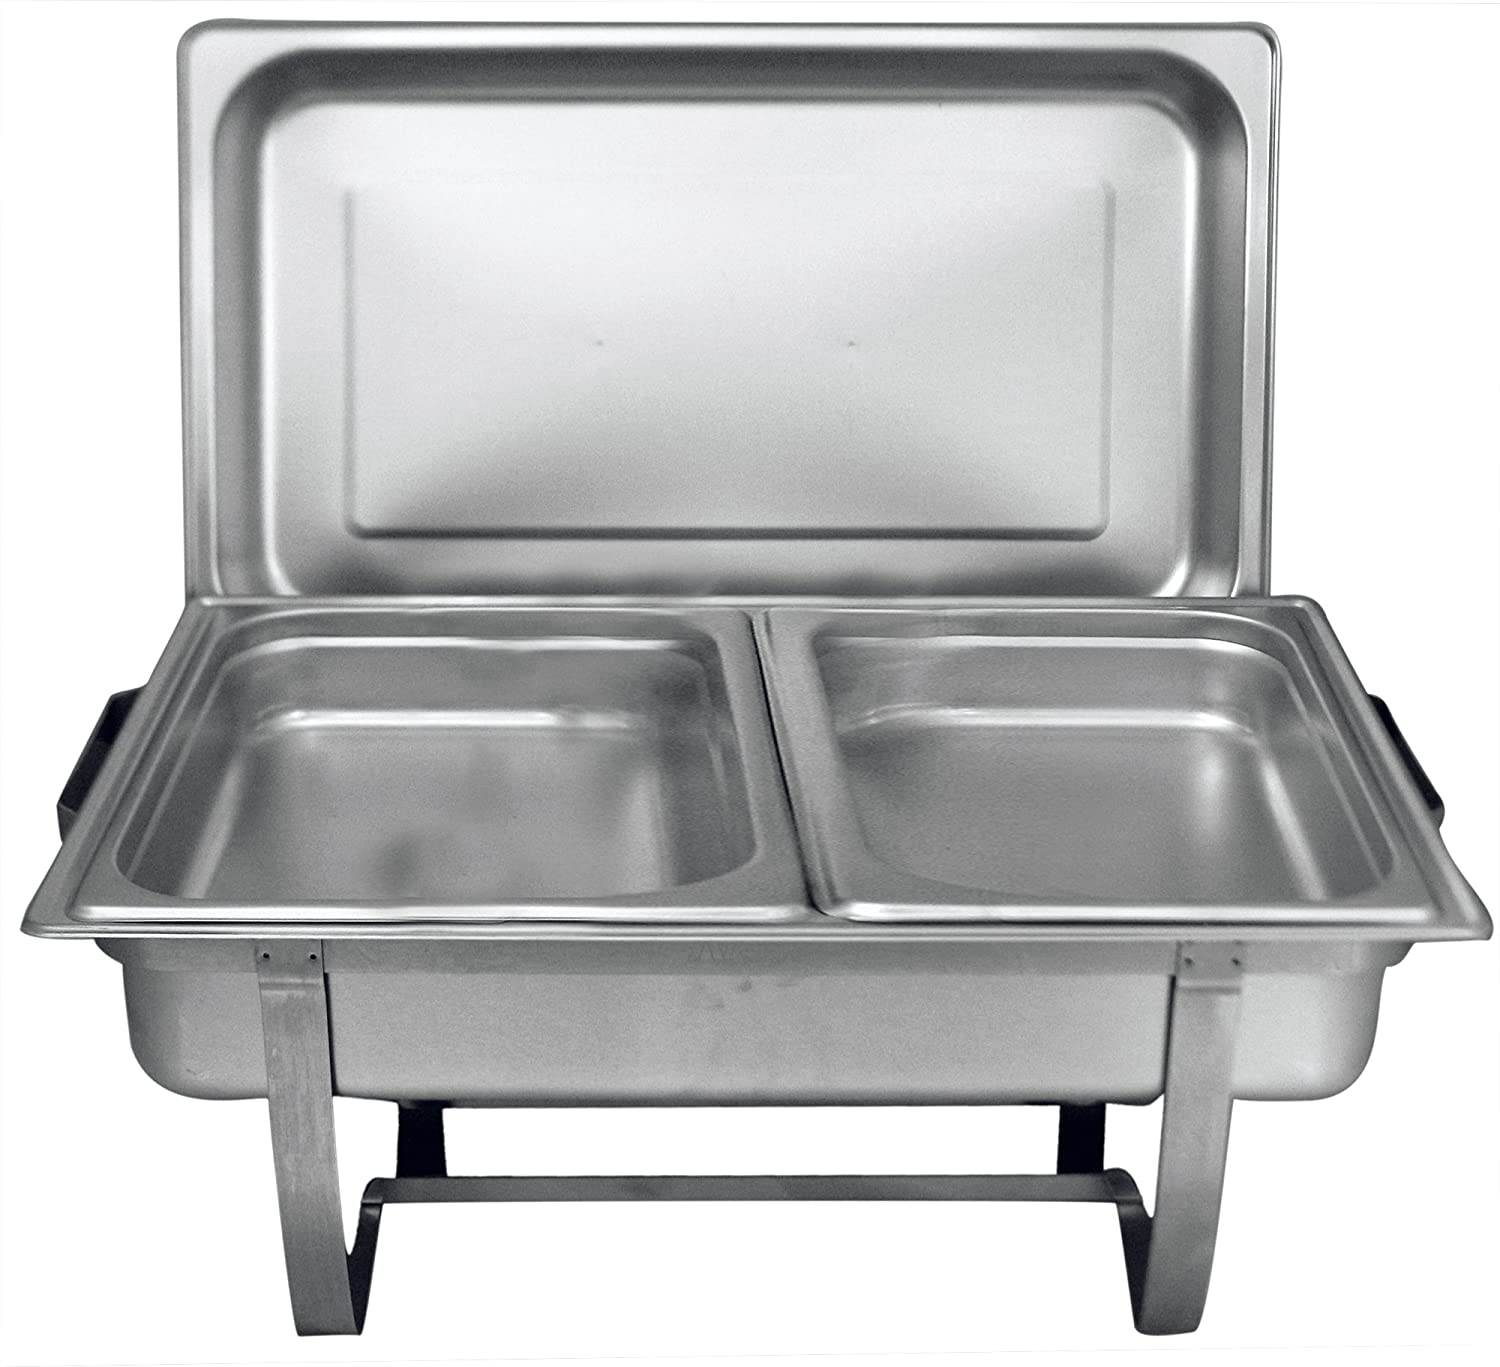 Tiger Chef 8 Quart Full Size Stainless Steel Chafer with Folding Frame and 2 Half Size Chafing Dishes Food Pans and Cool-Touch Plastic Handle on Top